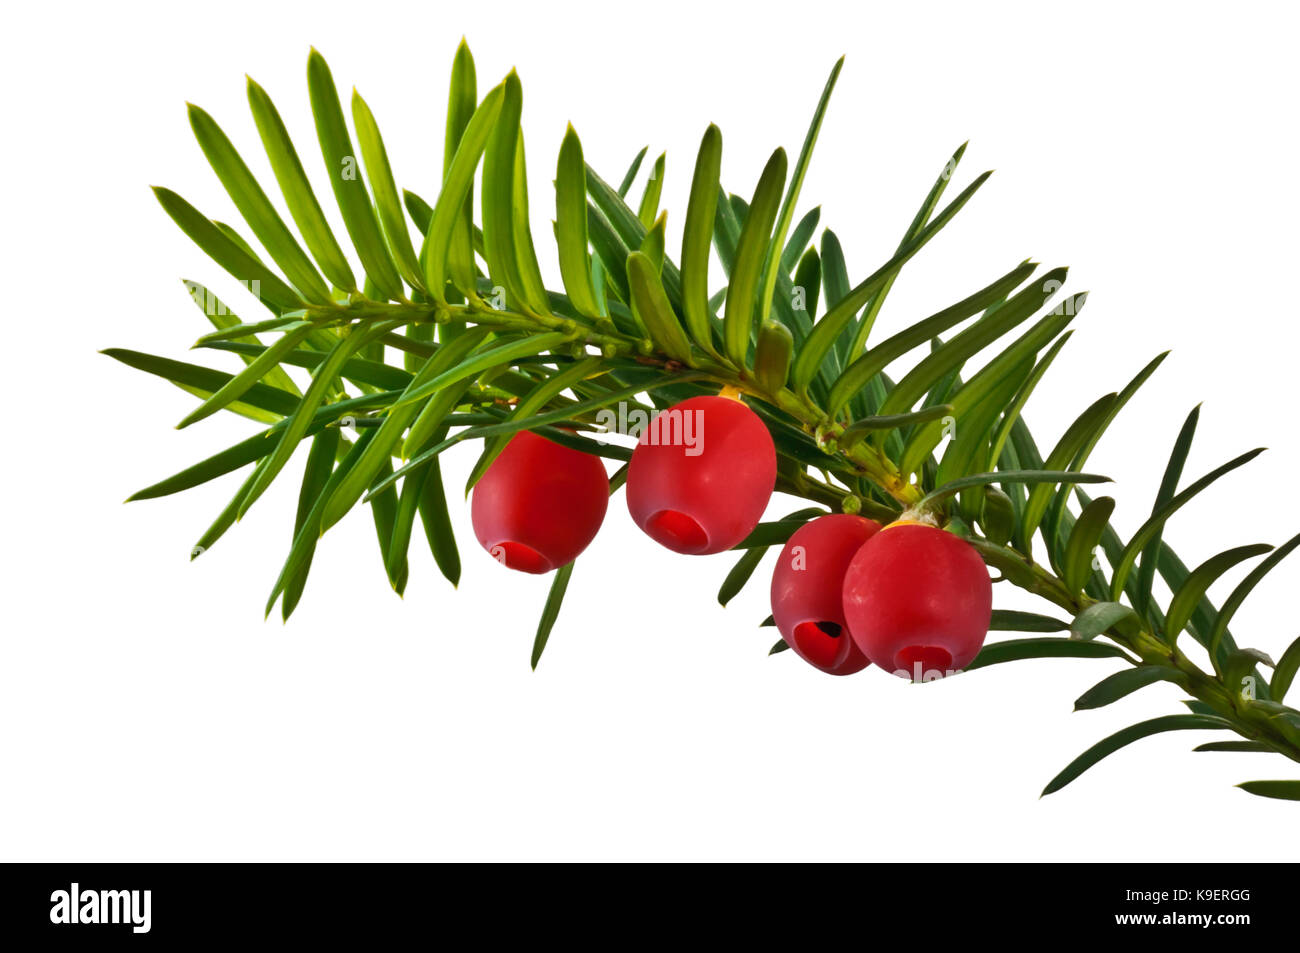 Twig yew tree with red fruits close up isolated on white background. - Stock Image